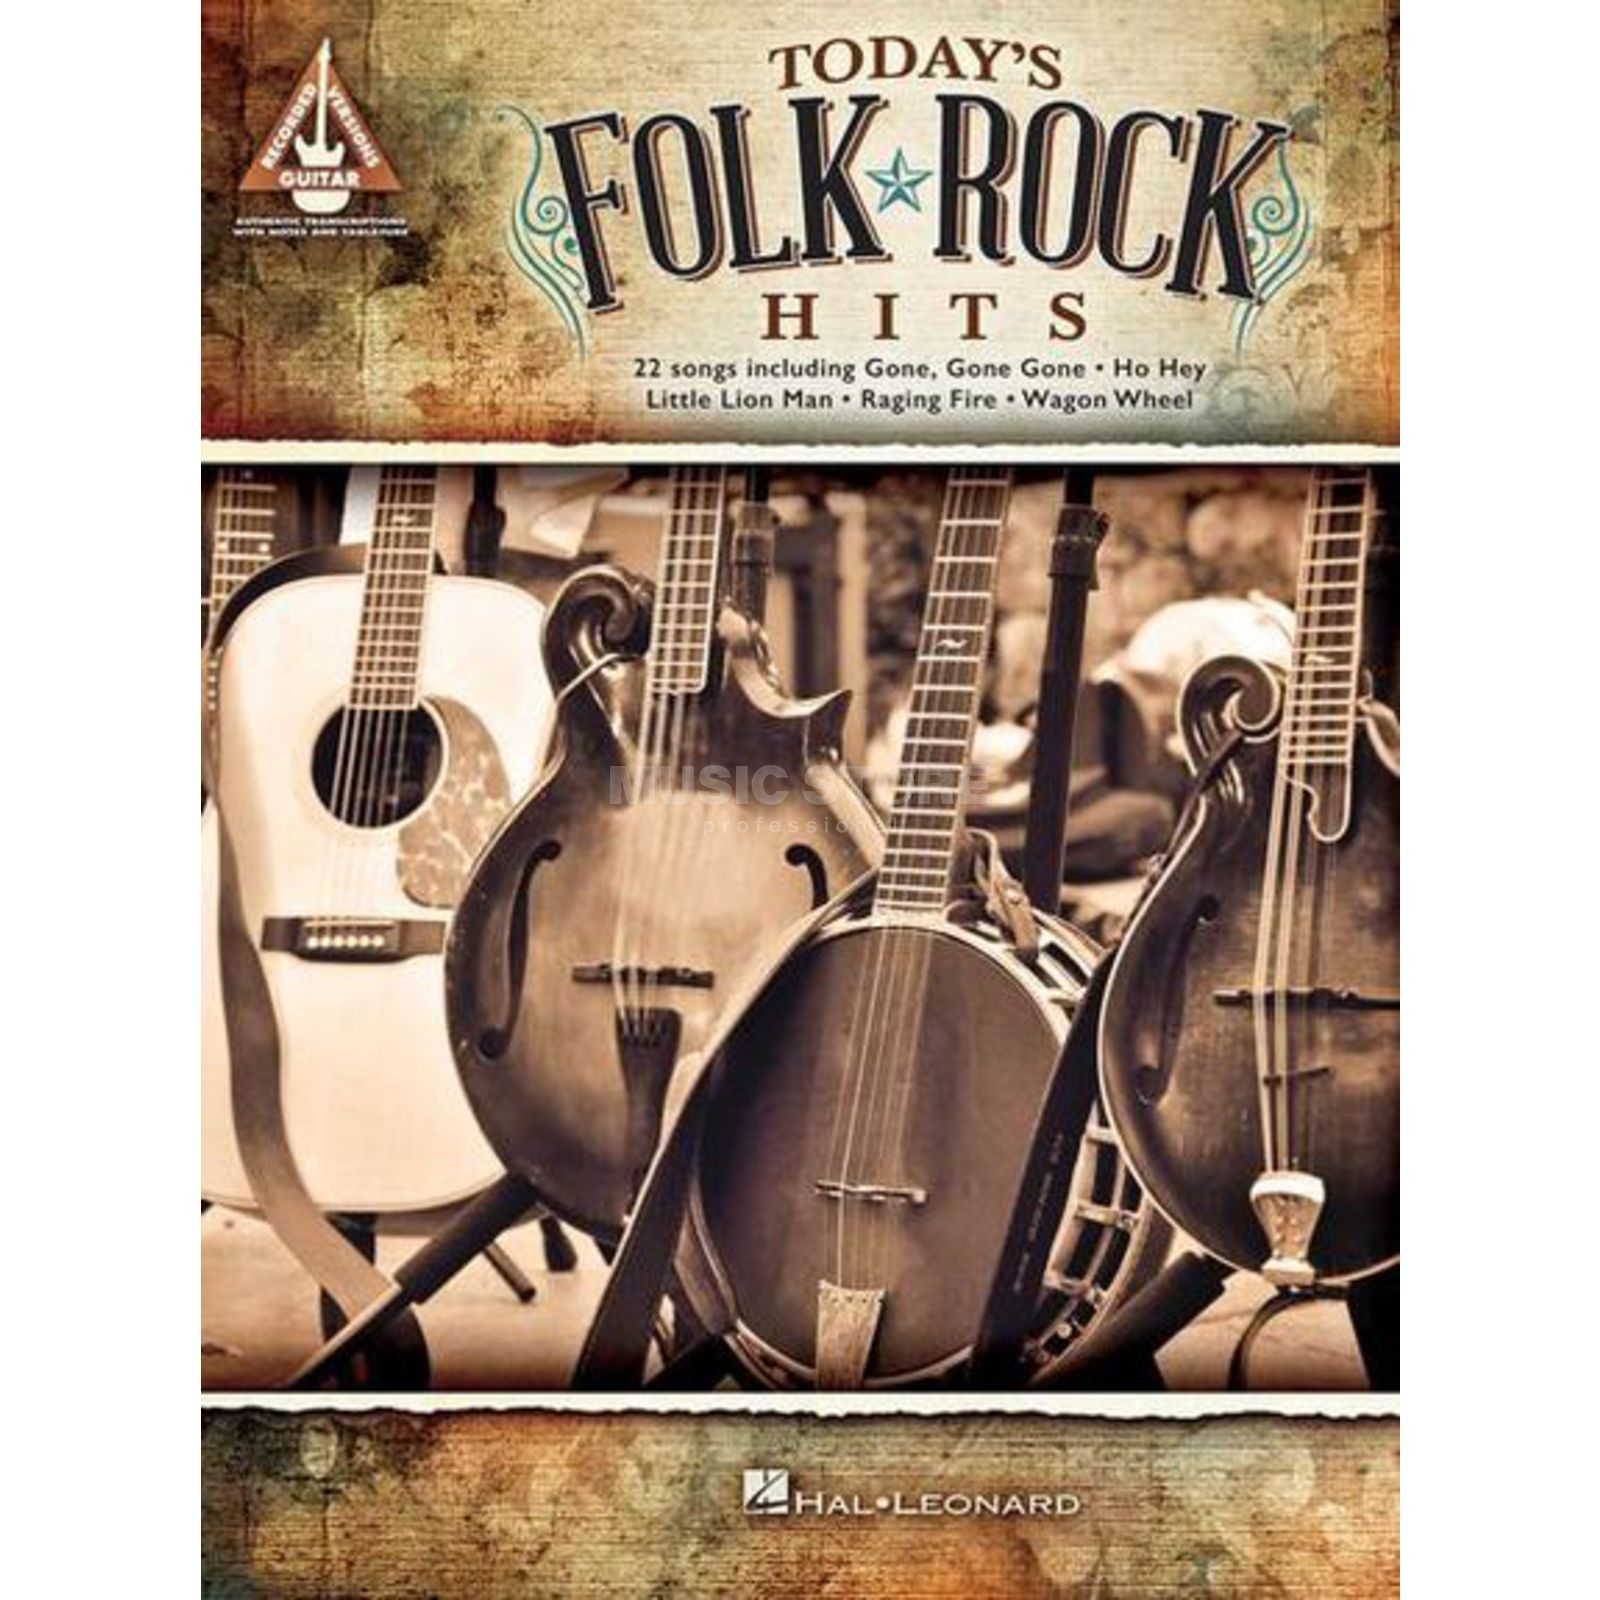 Hal Leonard Today's Folk Rock Hits Produktbillede